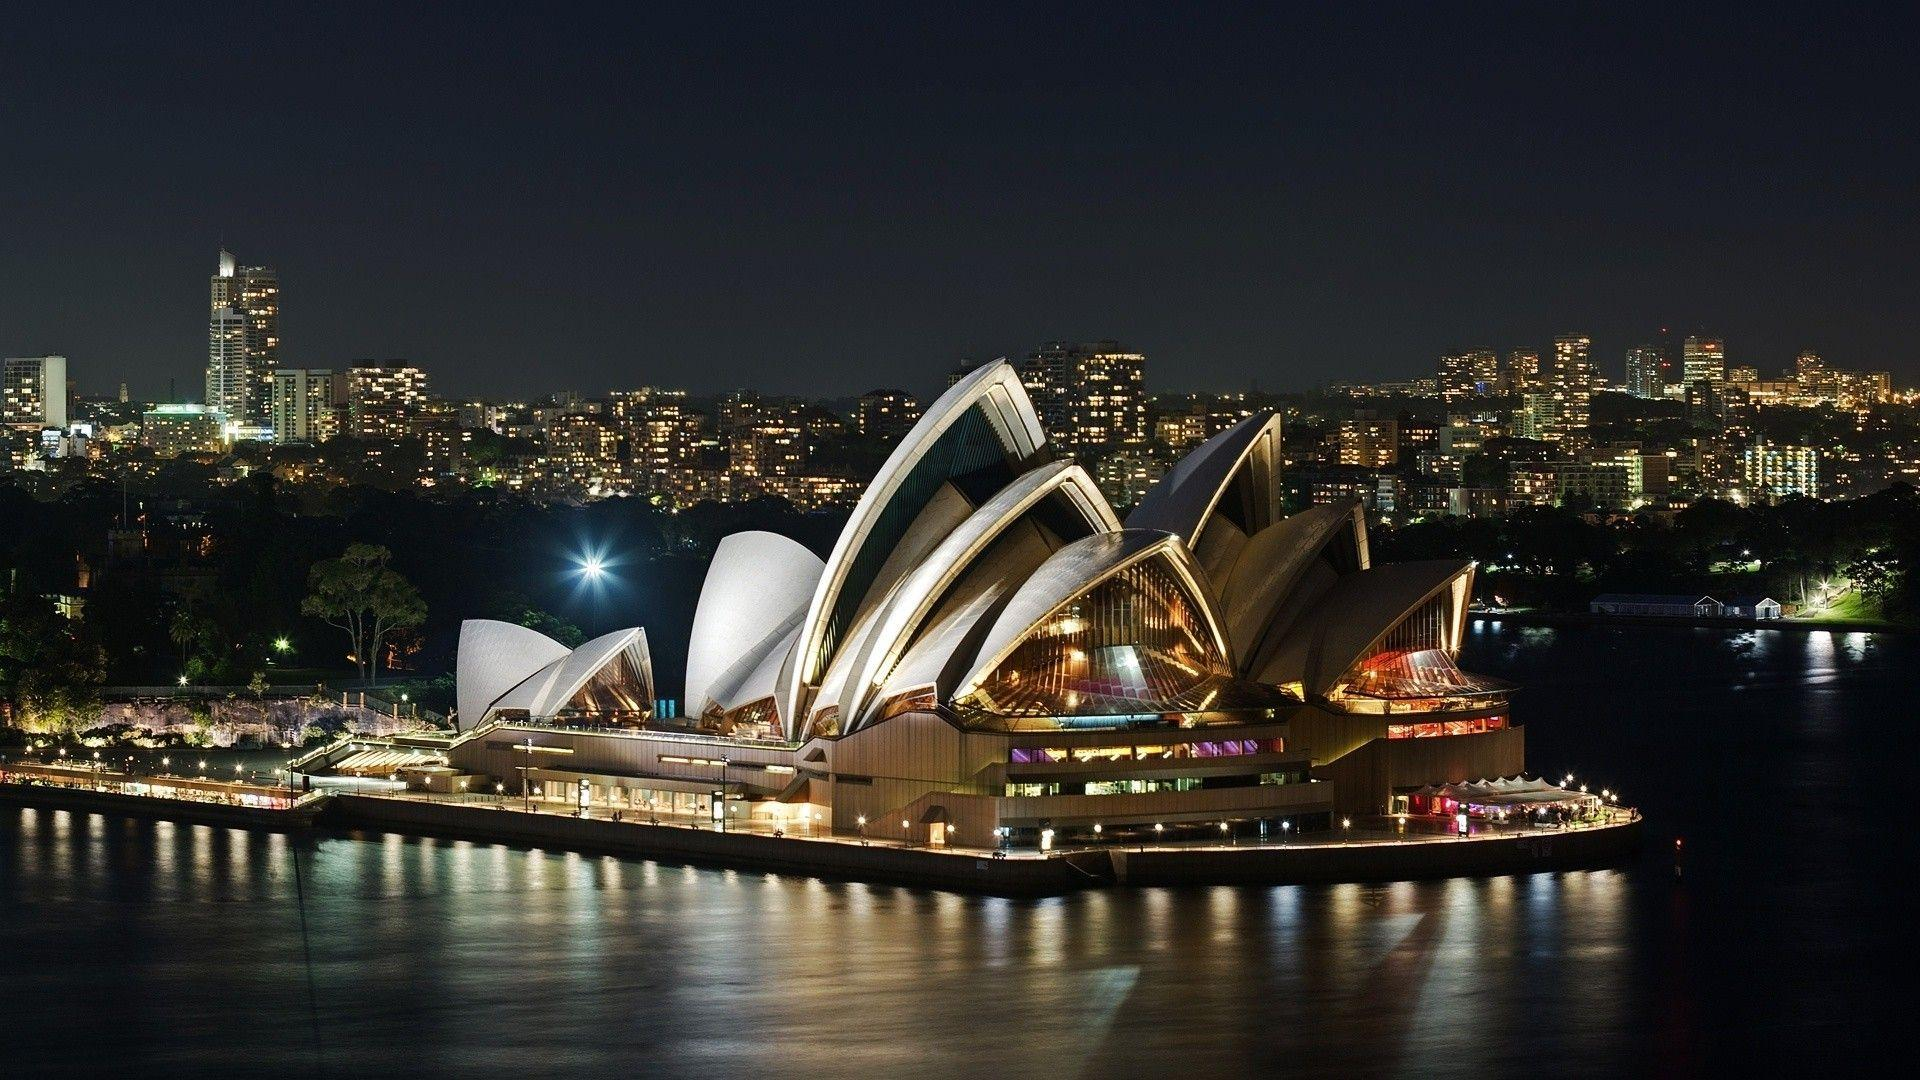 sydney opera house wallpapers - wallpaper cave